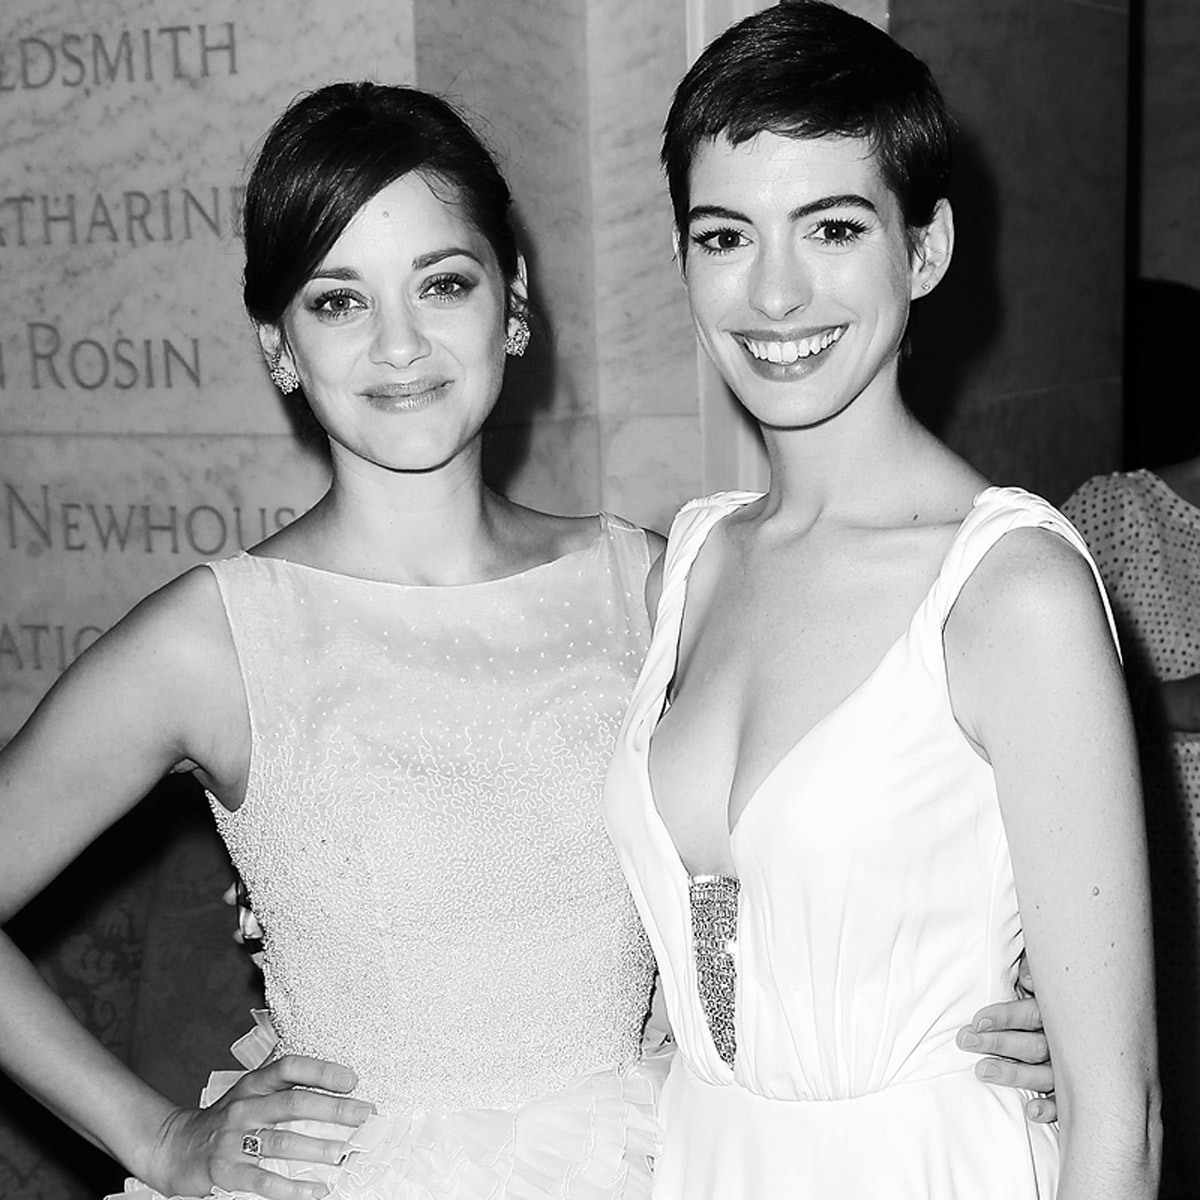 Marion Cotillard and Anne Hathaway at The Dark Knight Rises premiere in New York.See the party photos on Vogue.com